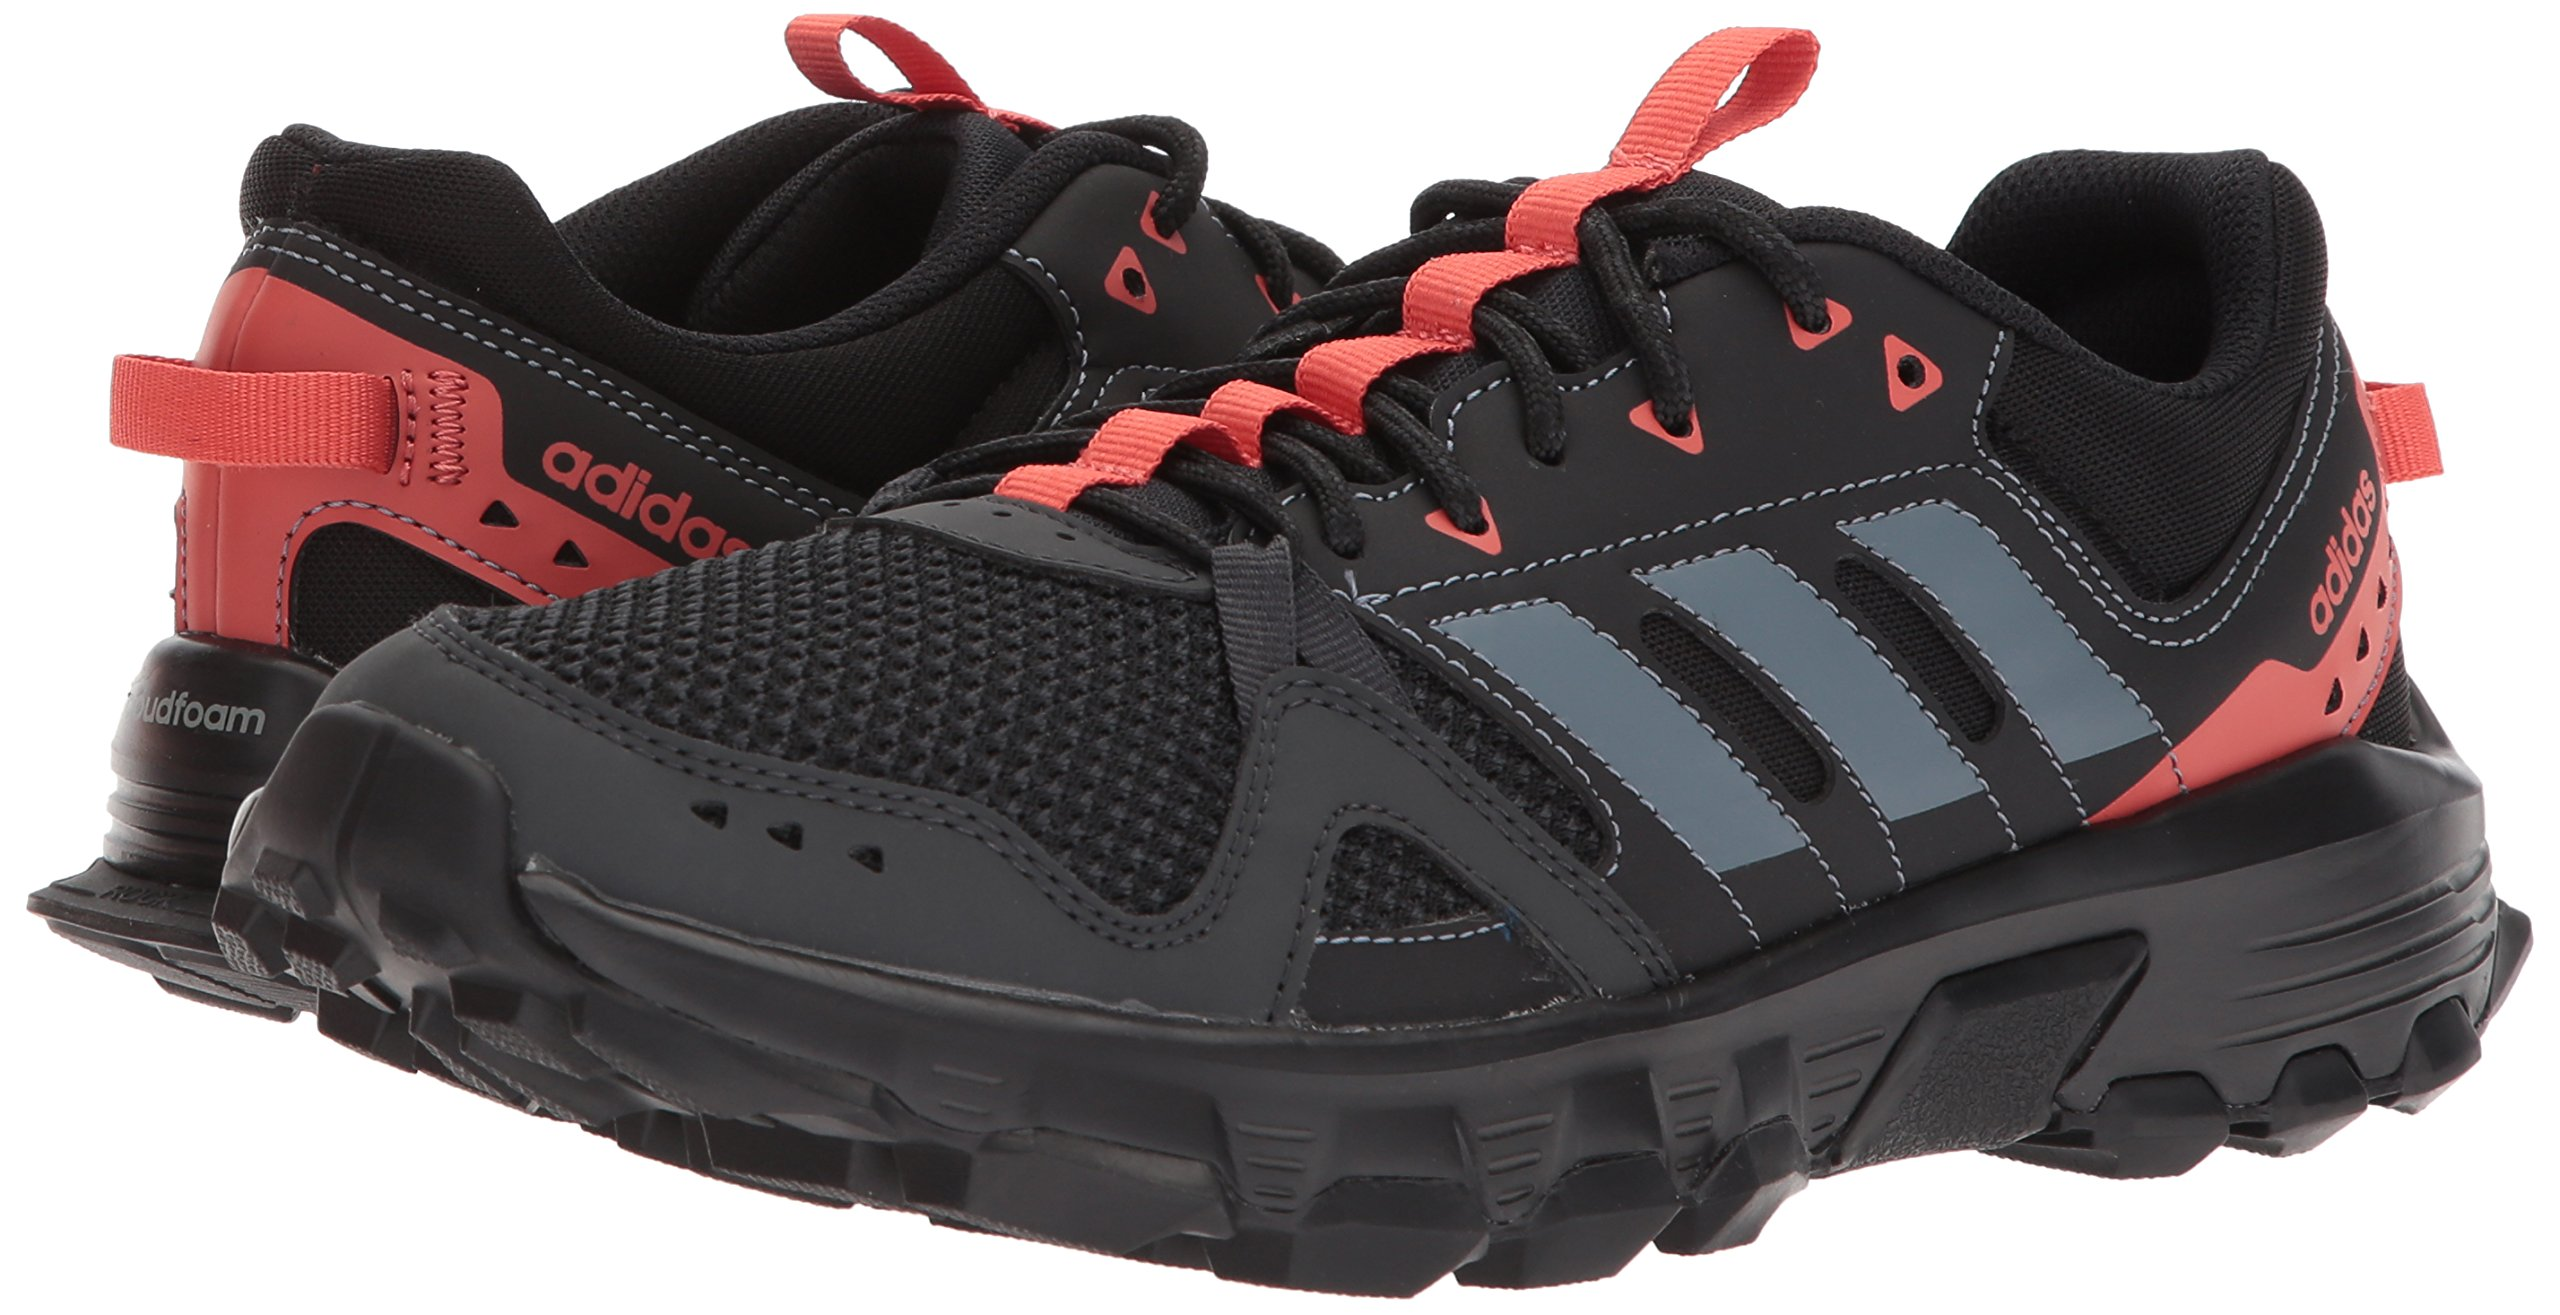 adidas Women's Rockadia w Trail Running Shoe, Carbon/Raw Steel/Trace Scarlet, 6 M US by adidas (Image #6)